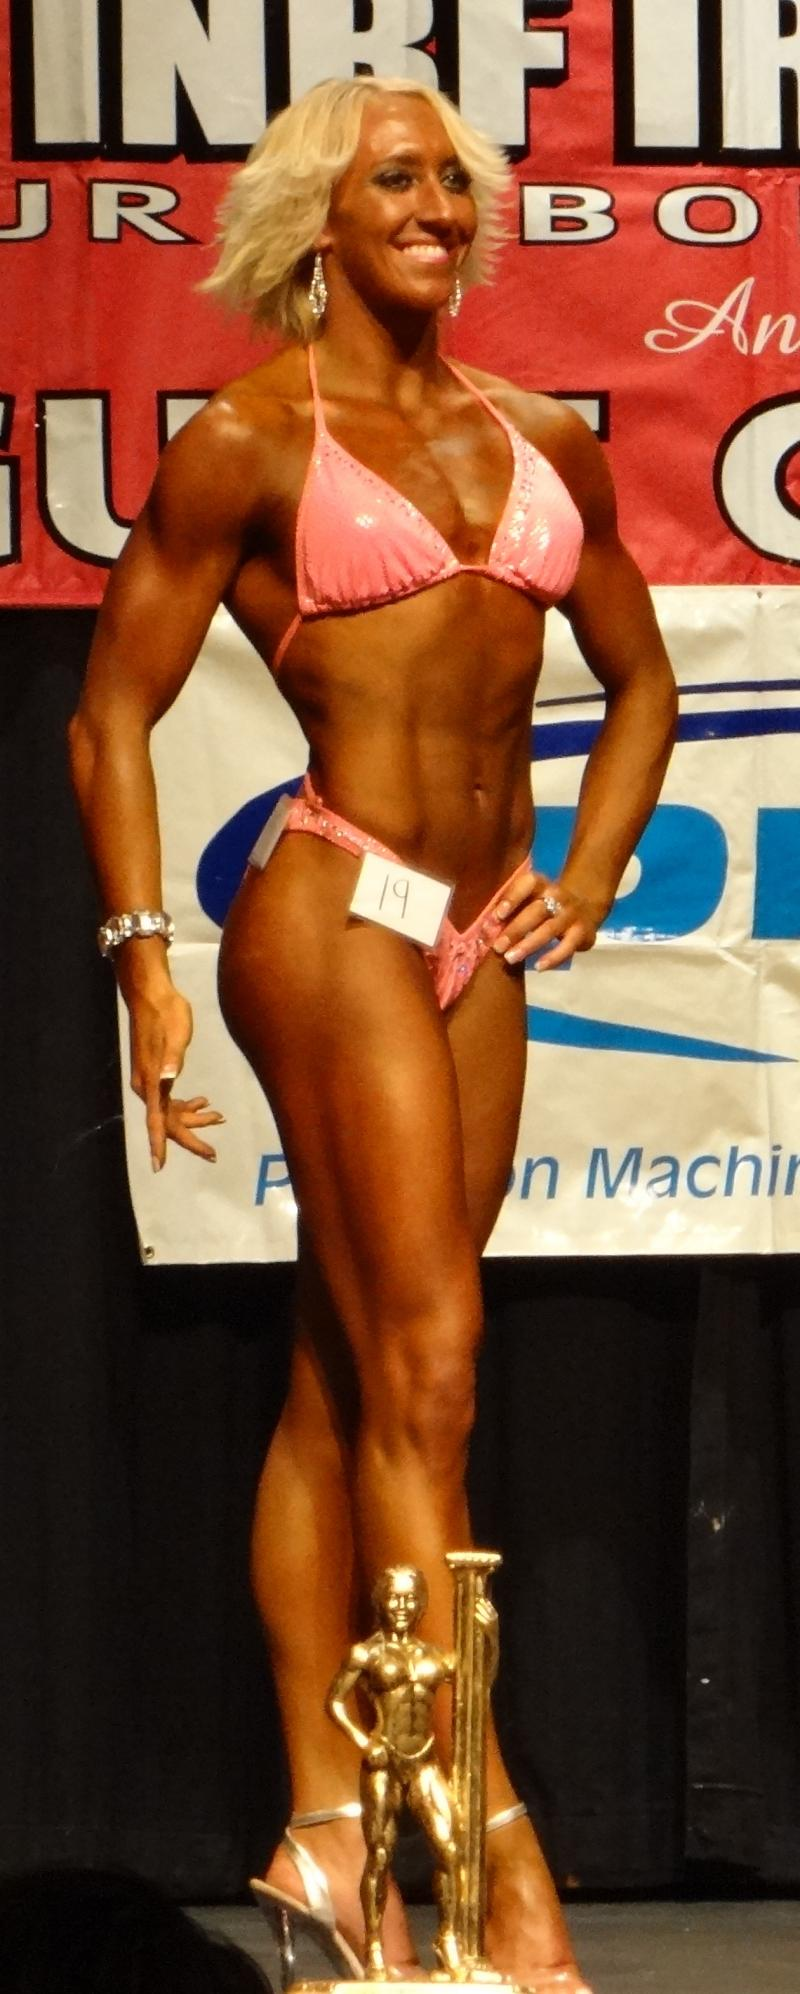 Sabrina Madsen 2nd figure Medium Class & 2nd Ms. Fit Body